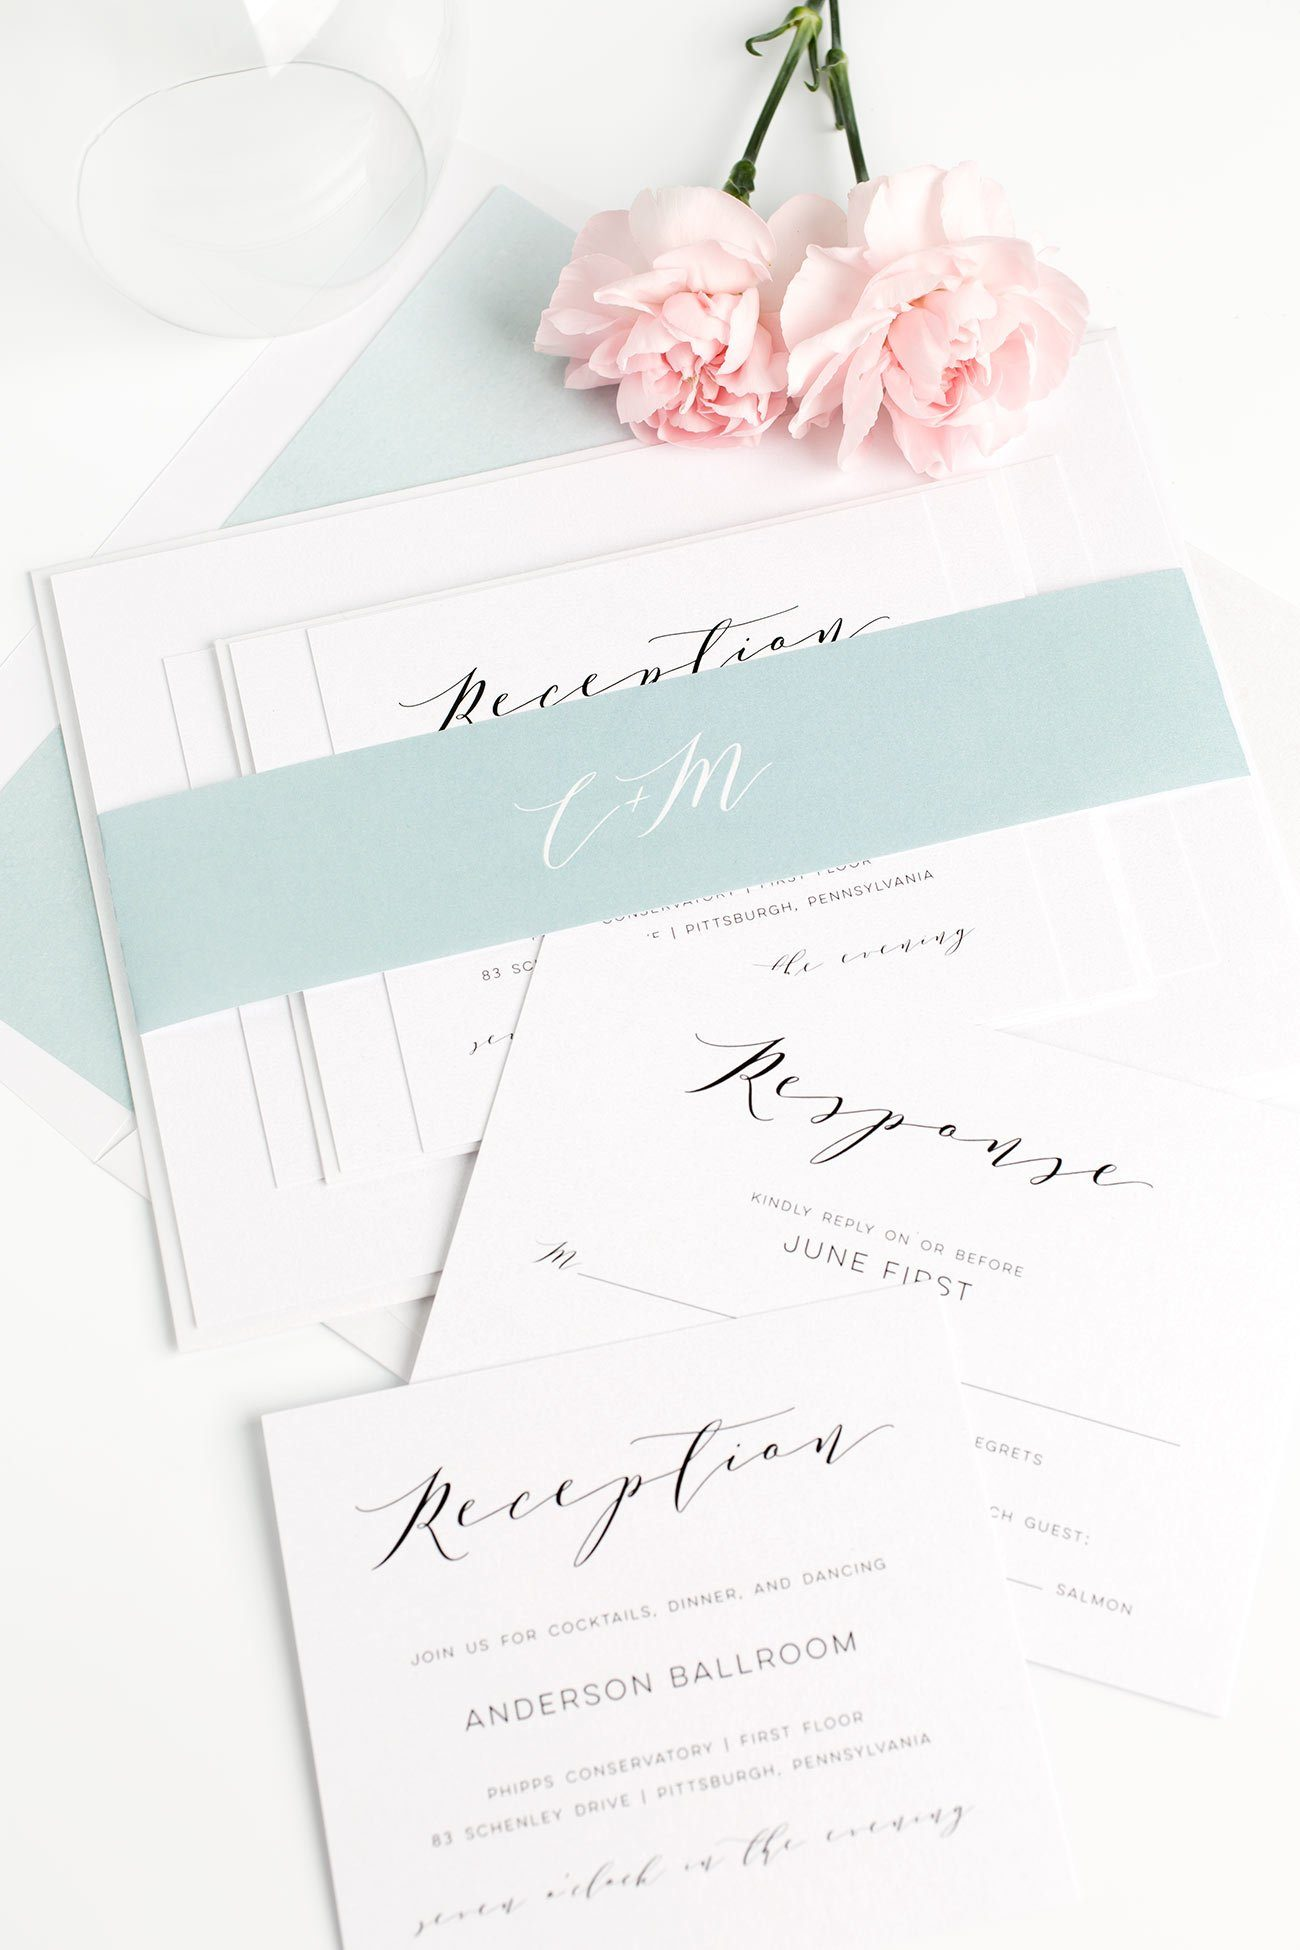 Dramatic Wedding Invitations in Dusty Teal with a Watercolor Envelope Liner and Romantic Calligraphy